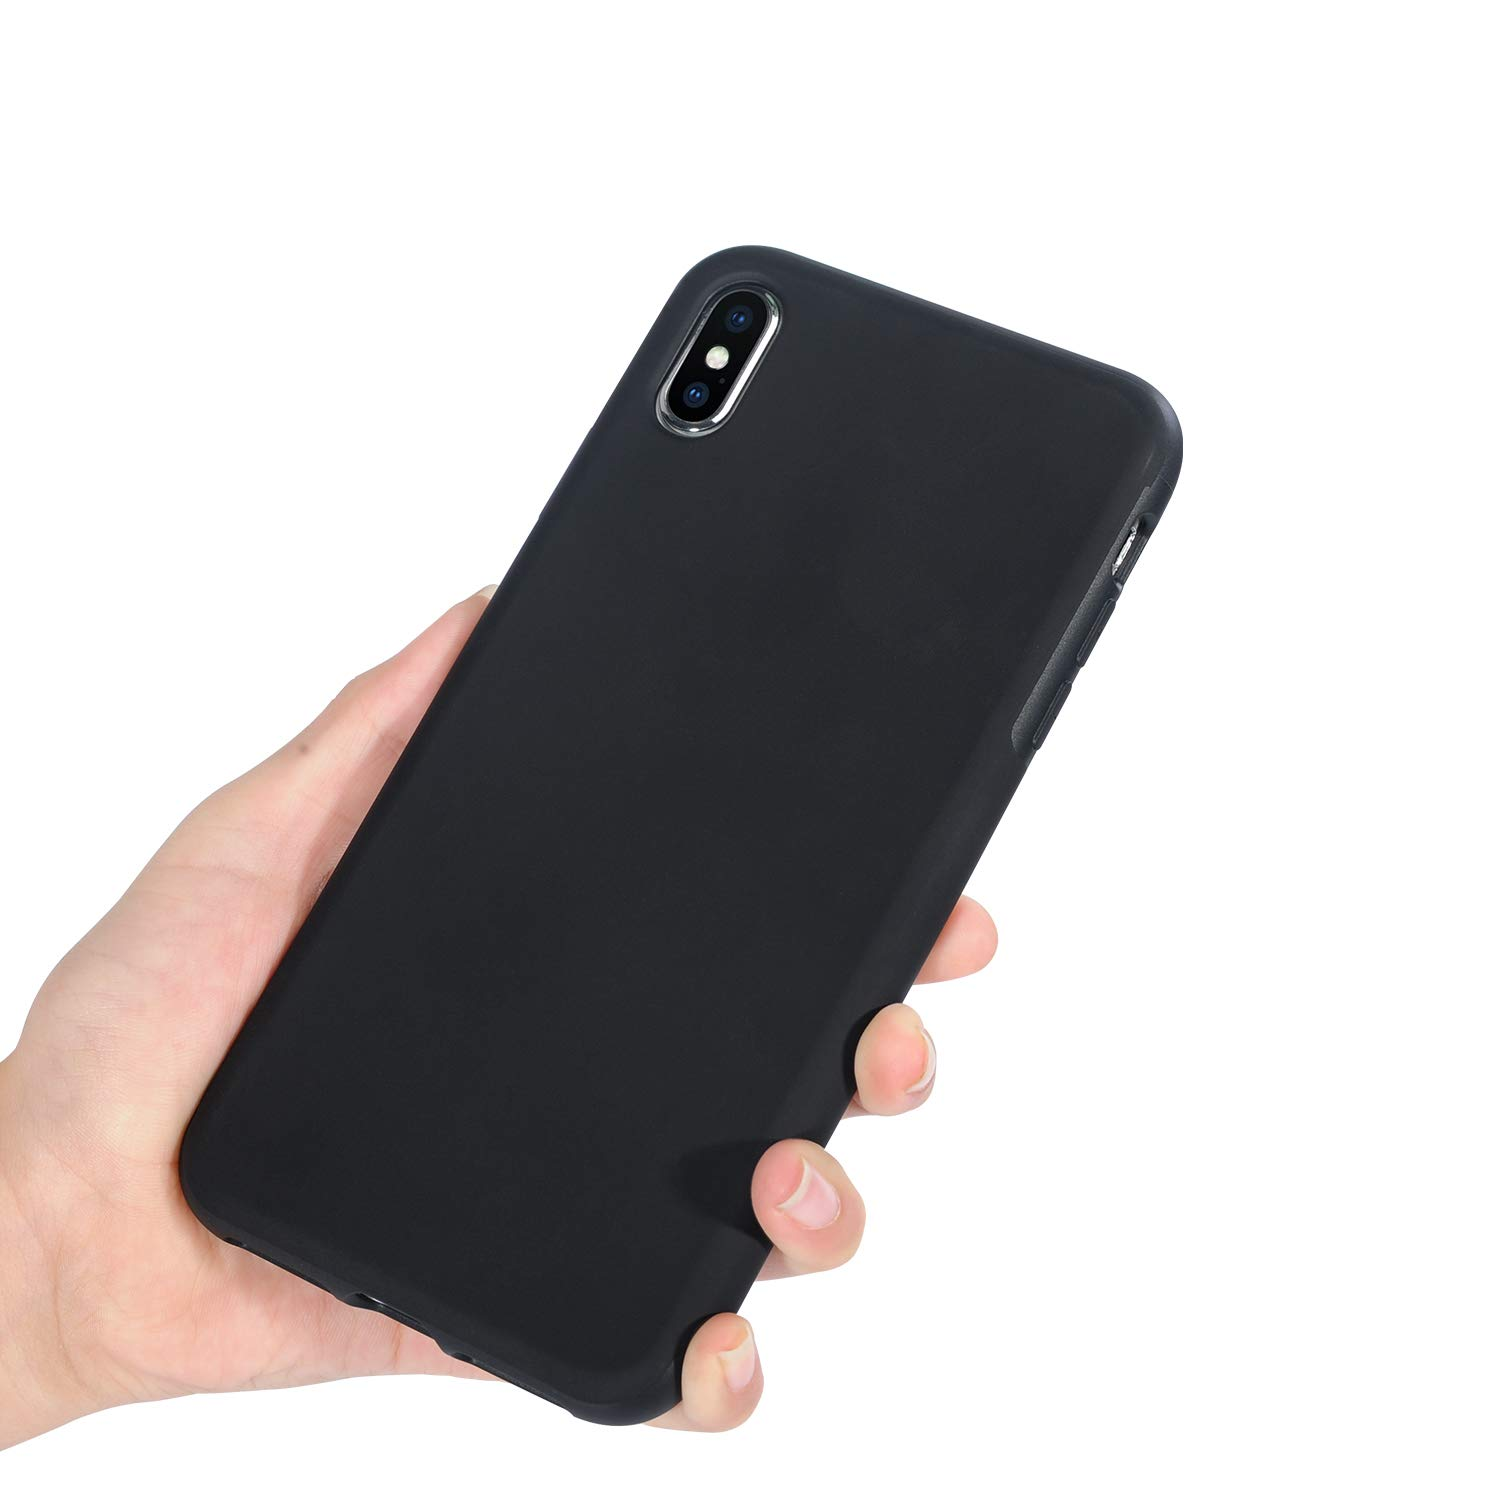 Mthinkor Compatible With Iphone Xs Max Case Liquid Goospery 5 Style Lux Jelly Black Silicone Leather Cell Phones Accessories